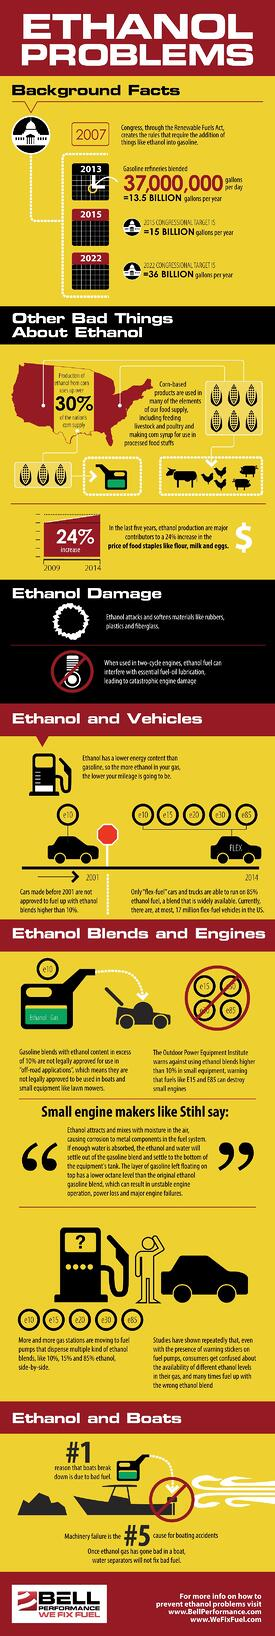 The Major Differences Between Ethanol and Gasoline